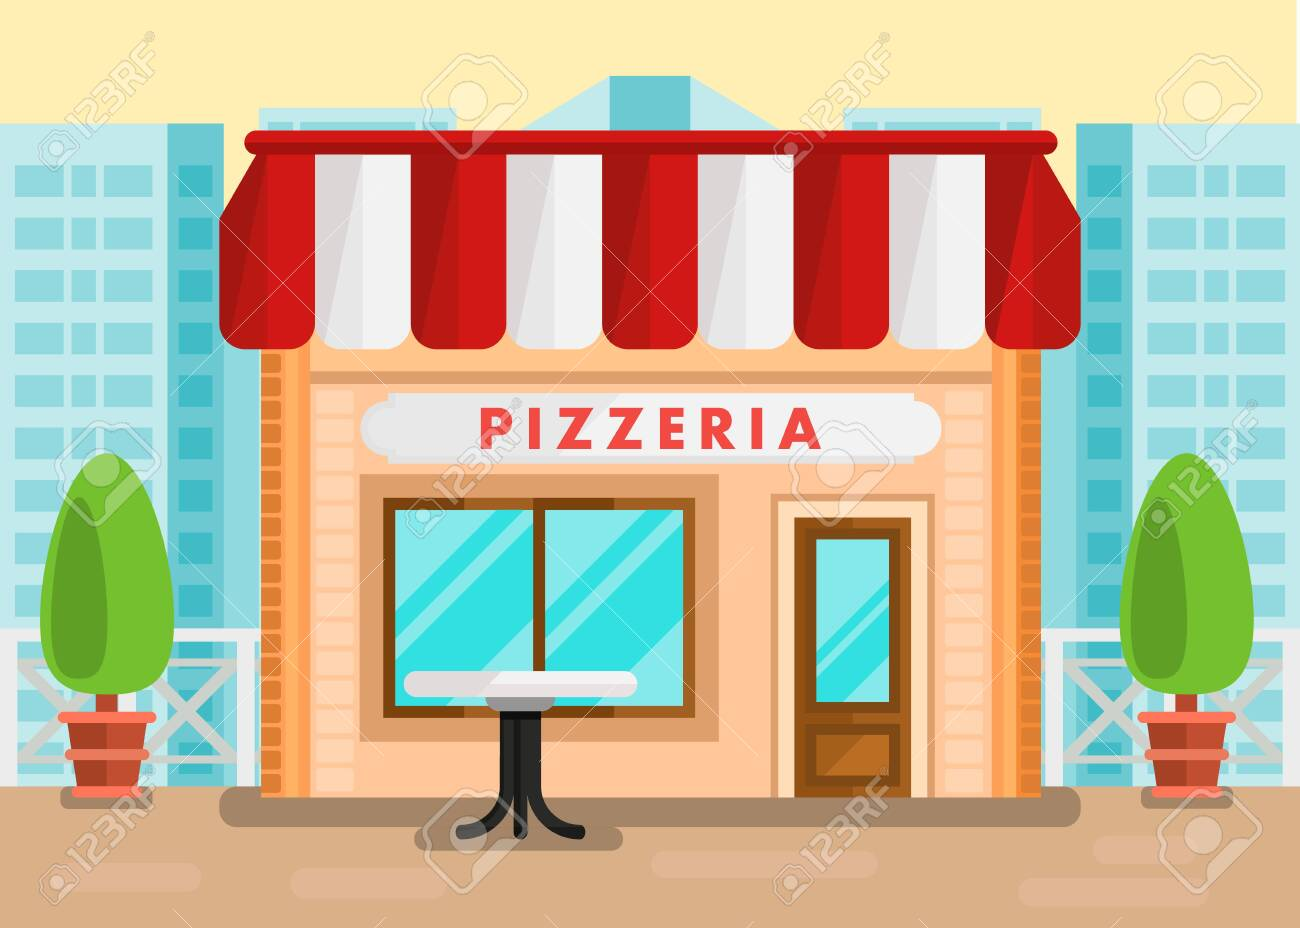 Pizzeria Outdoor Seating Cartoon Illustration Italian Cuisine Royalty Free Cliparts Vectors And Stock Illustration Image 121211065